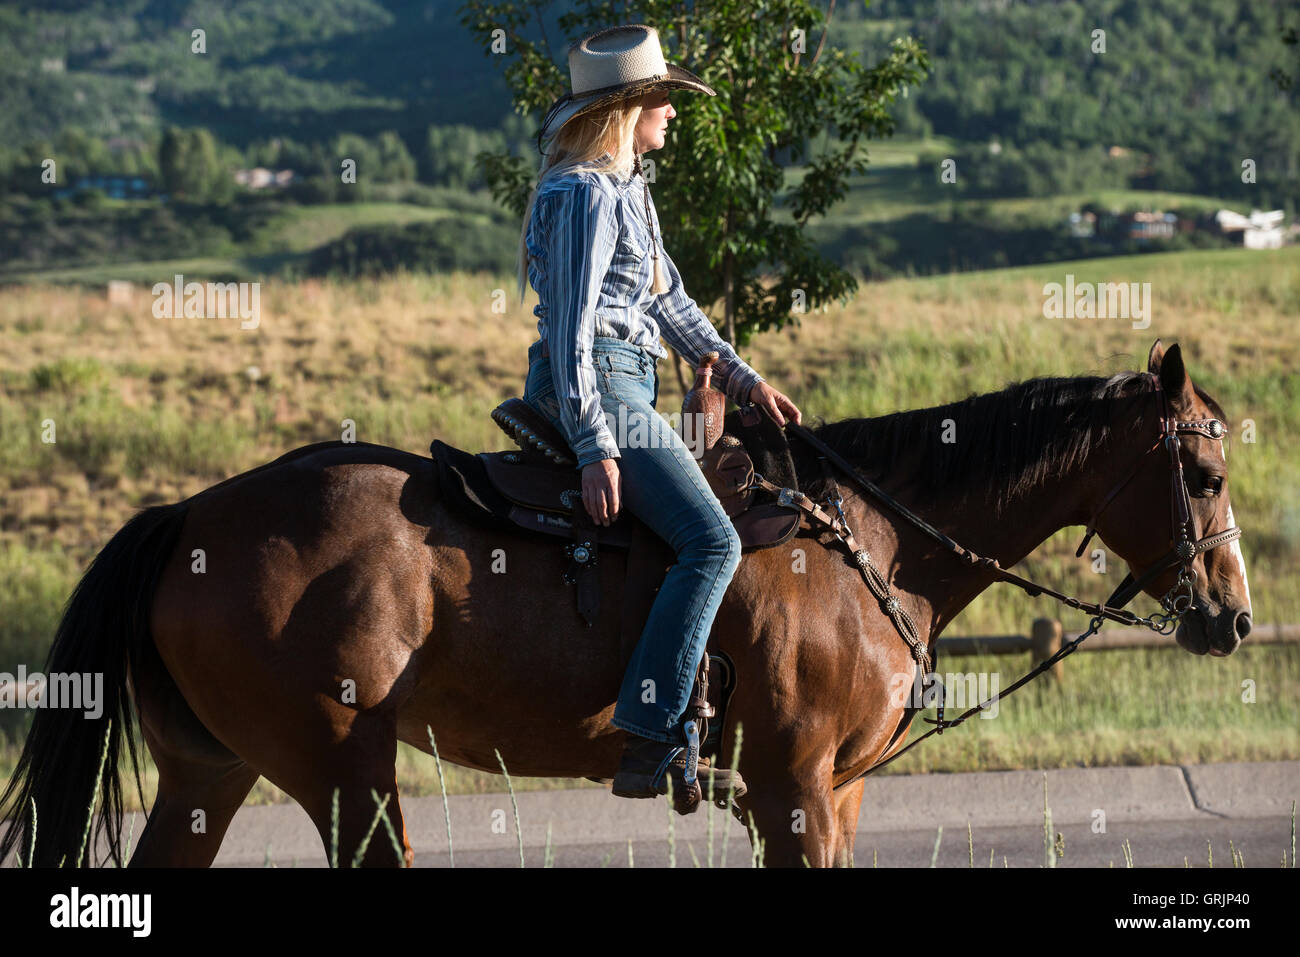 Female adult cowgirl riding a bay horse along the road toward the rodeo at sunset - Stock Image